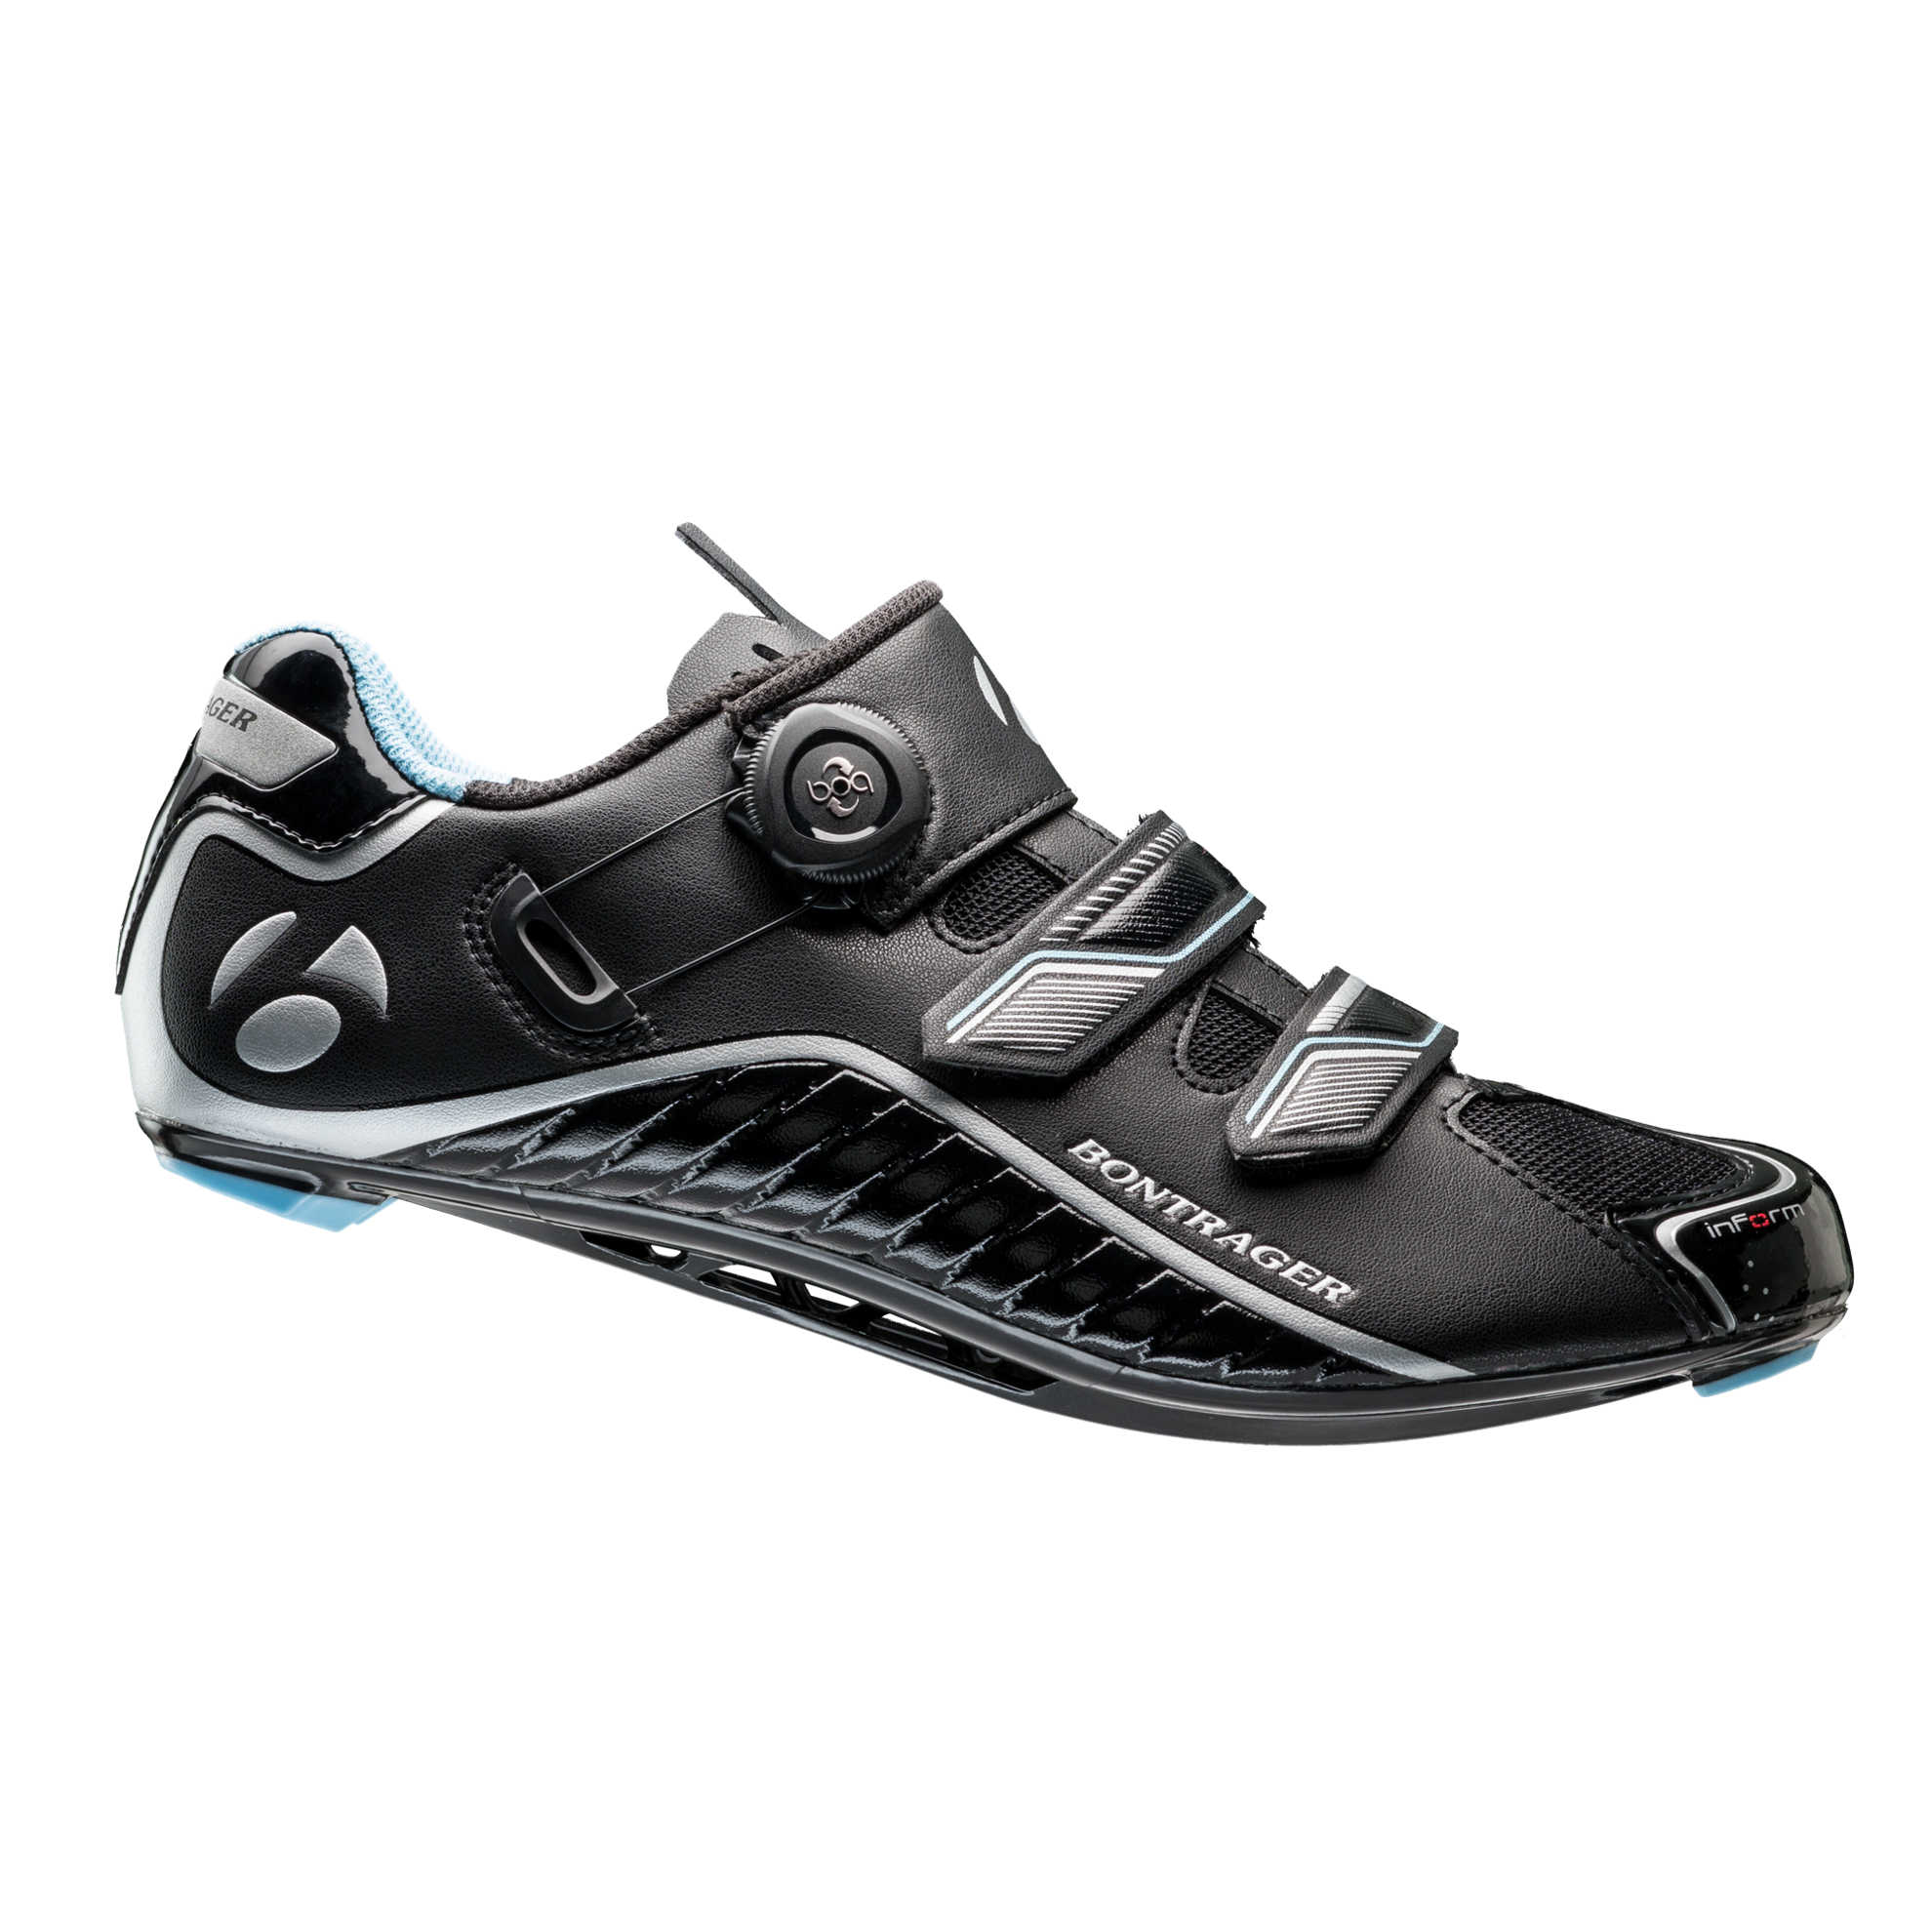 Bontrager Sonic Womens Shoe : Black